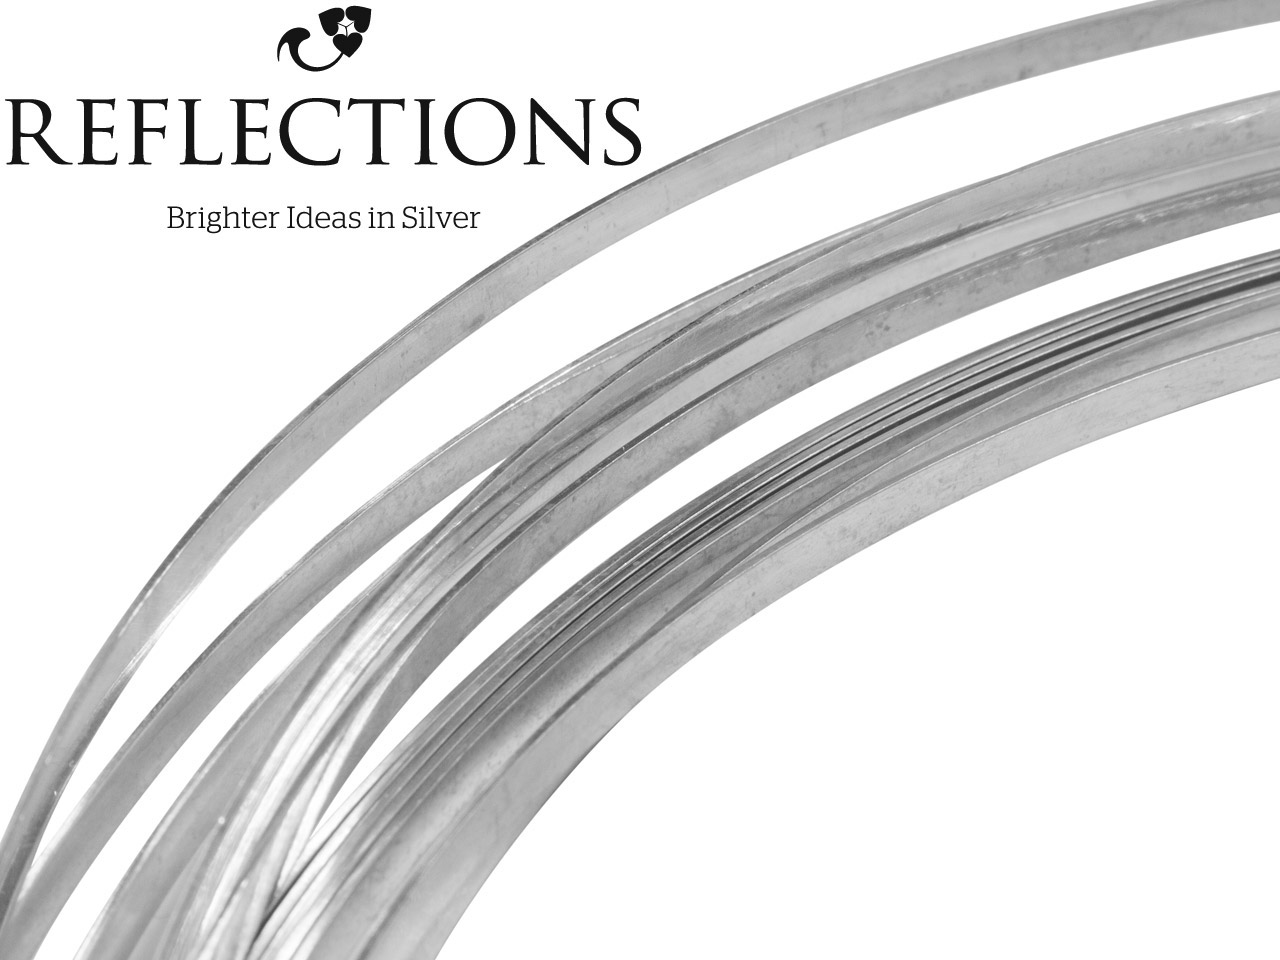 Reflections Silver Rectangular Wire 6.00mm X 1.20mm. Fully Annealed     Soft